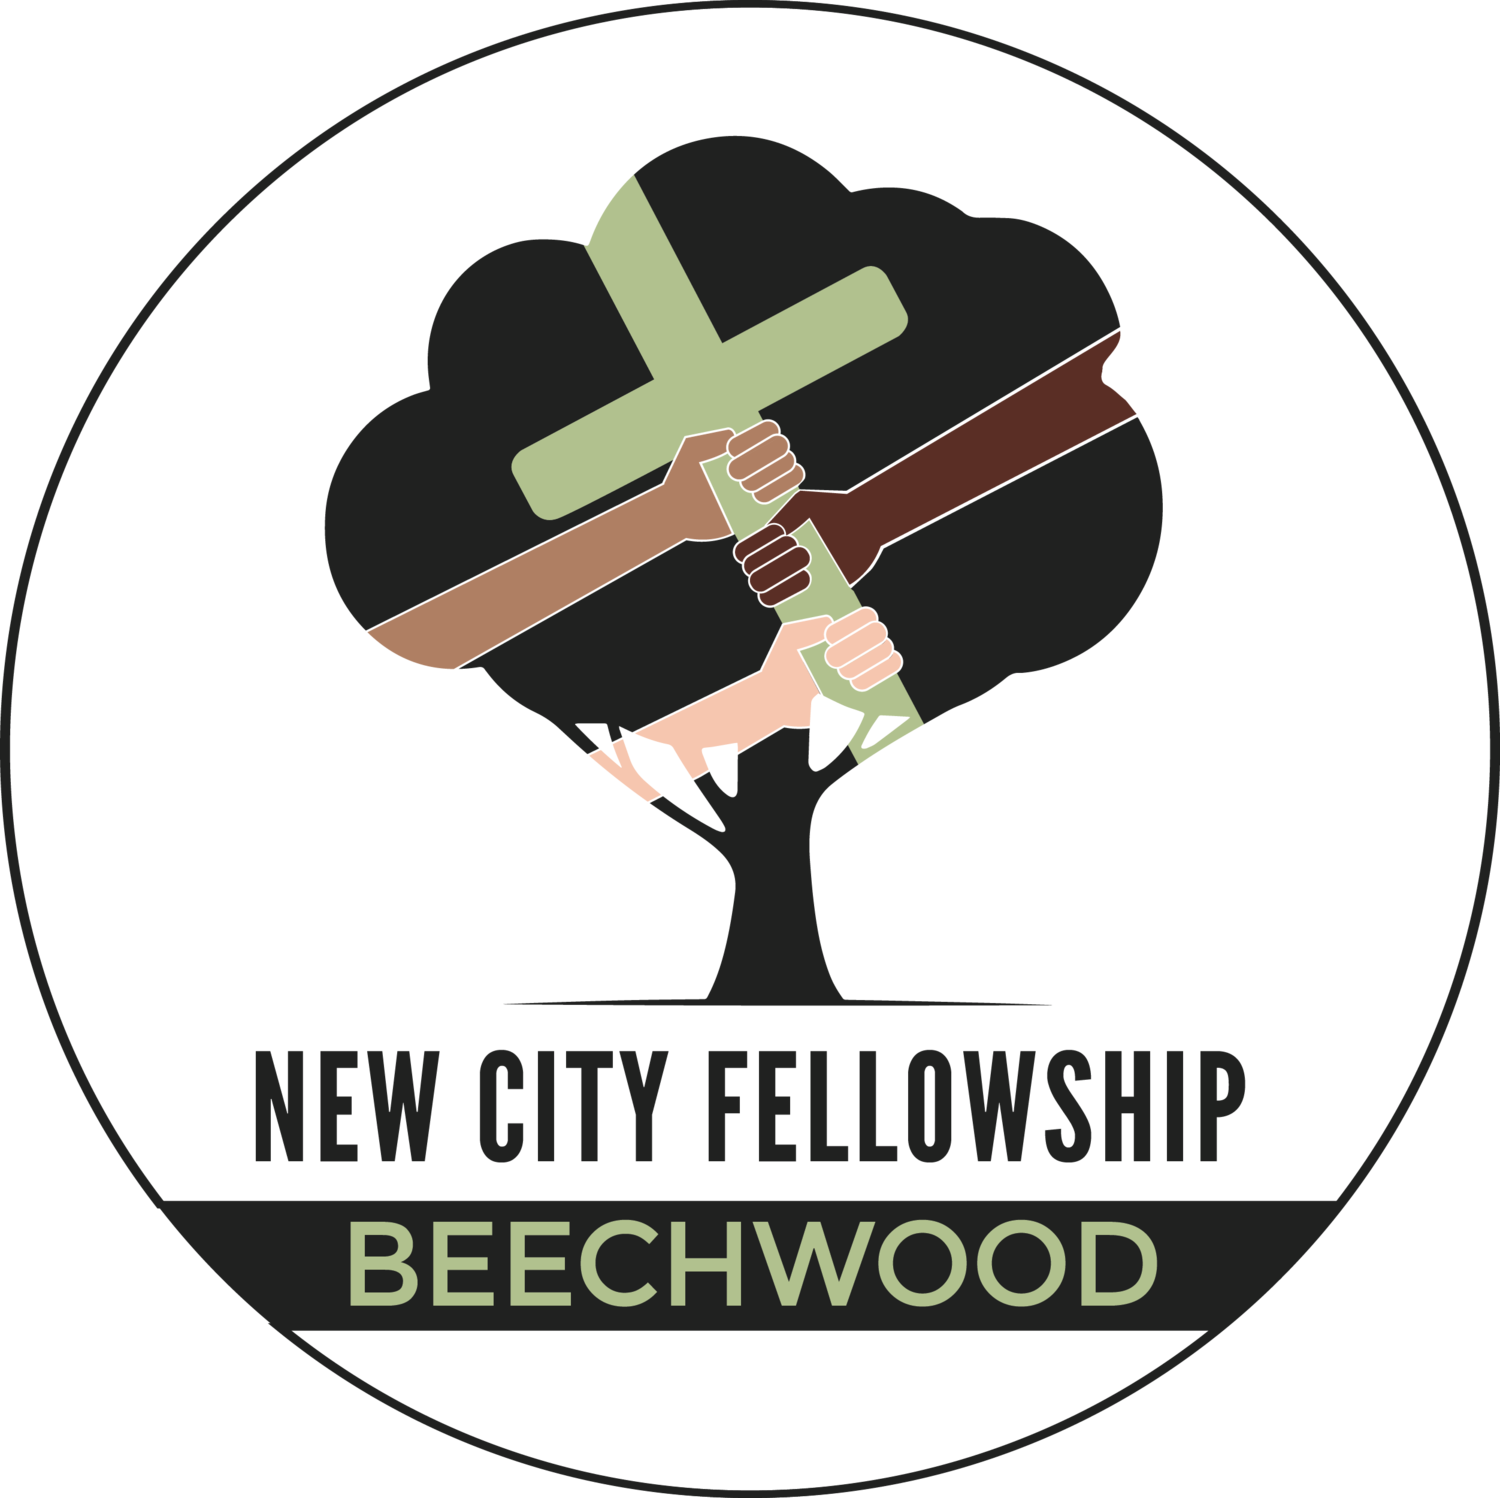 New City Fellowship Beechwood